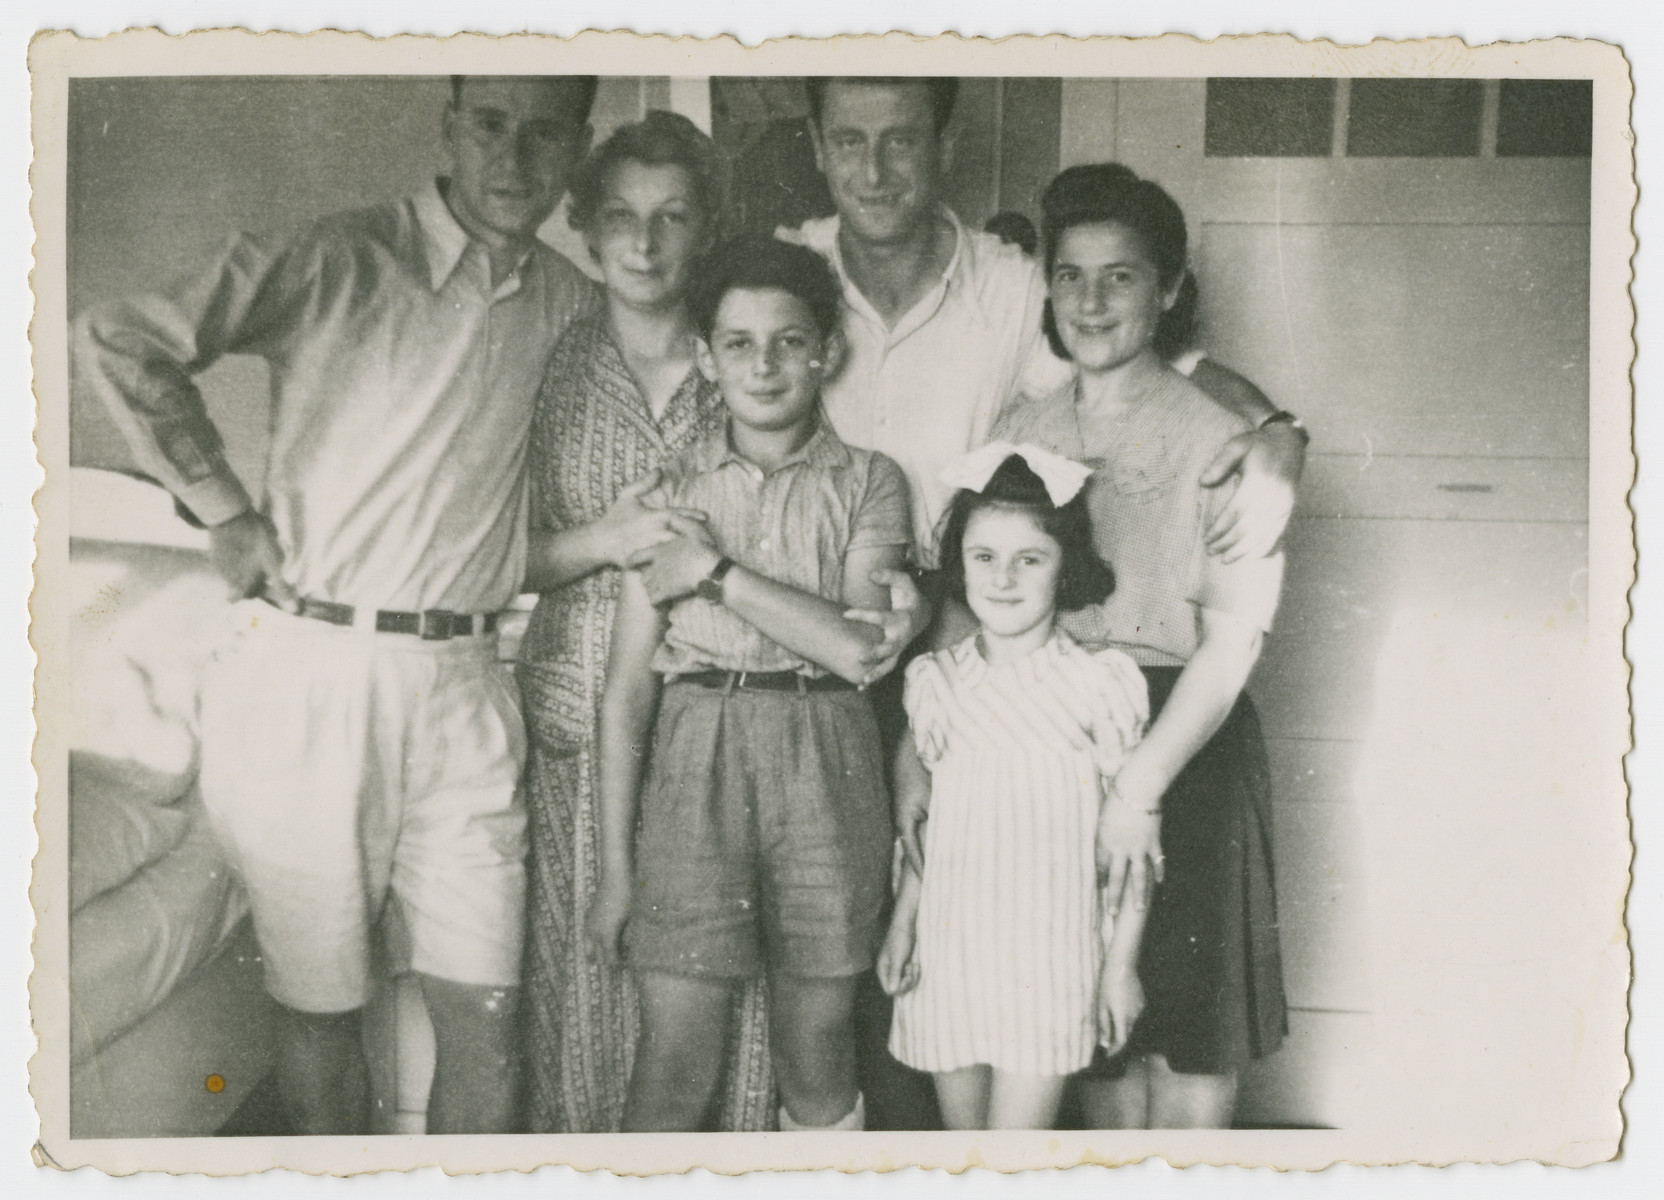 Postwar group portrait of the Zimmerman family.  From left to right are Chaskiel Zimmerman, Karola Ogurek Zimmerman, Jerzy Ogurek Zimmerman, and Chaskiel's brother, wife and daughter.